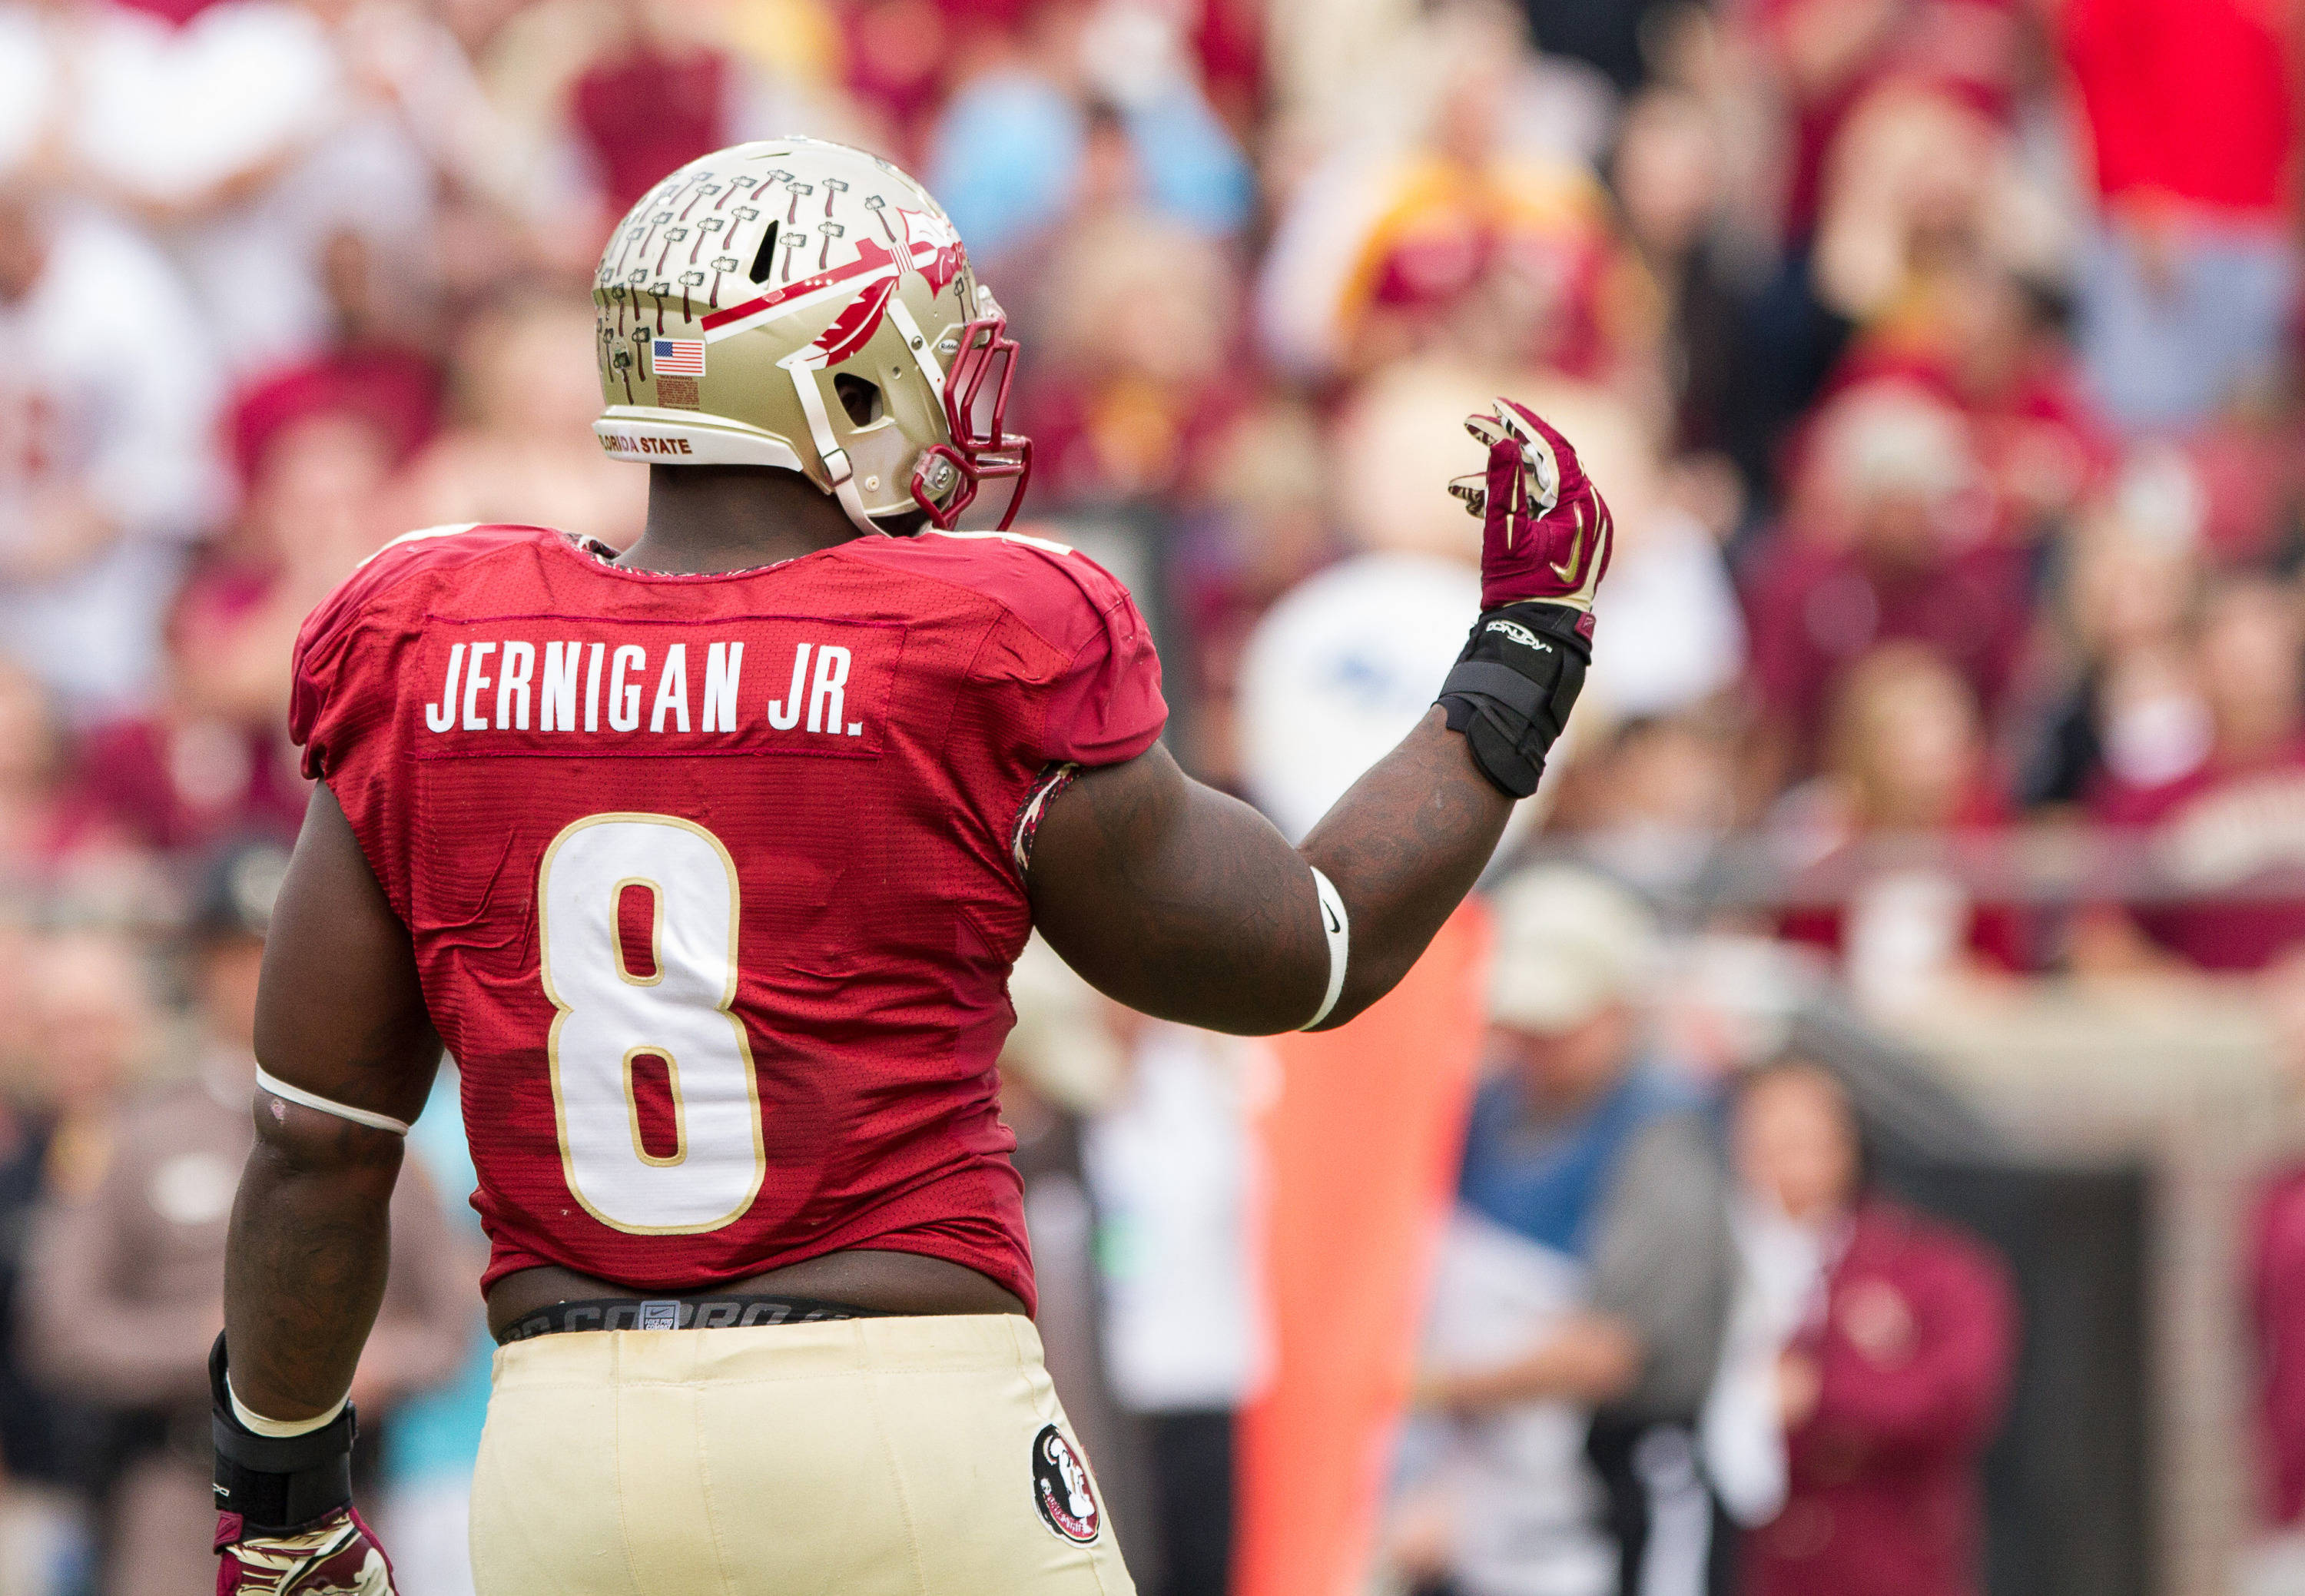 Timmy Jernigan (8) beckons the team back after an Idaho run is taken back as a result of a holding penalty during FSU Football's 80-14 victory over Idaho in Tallahassee, Fla on Saturday, November 23, 2013. Photos by Mike Schwarz.